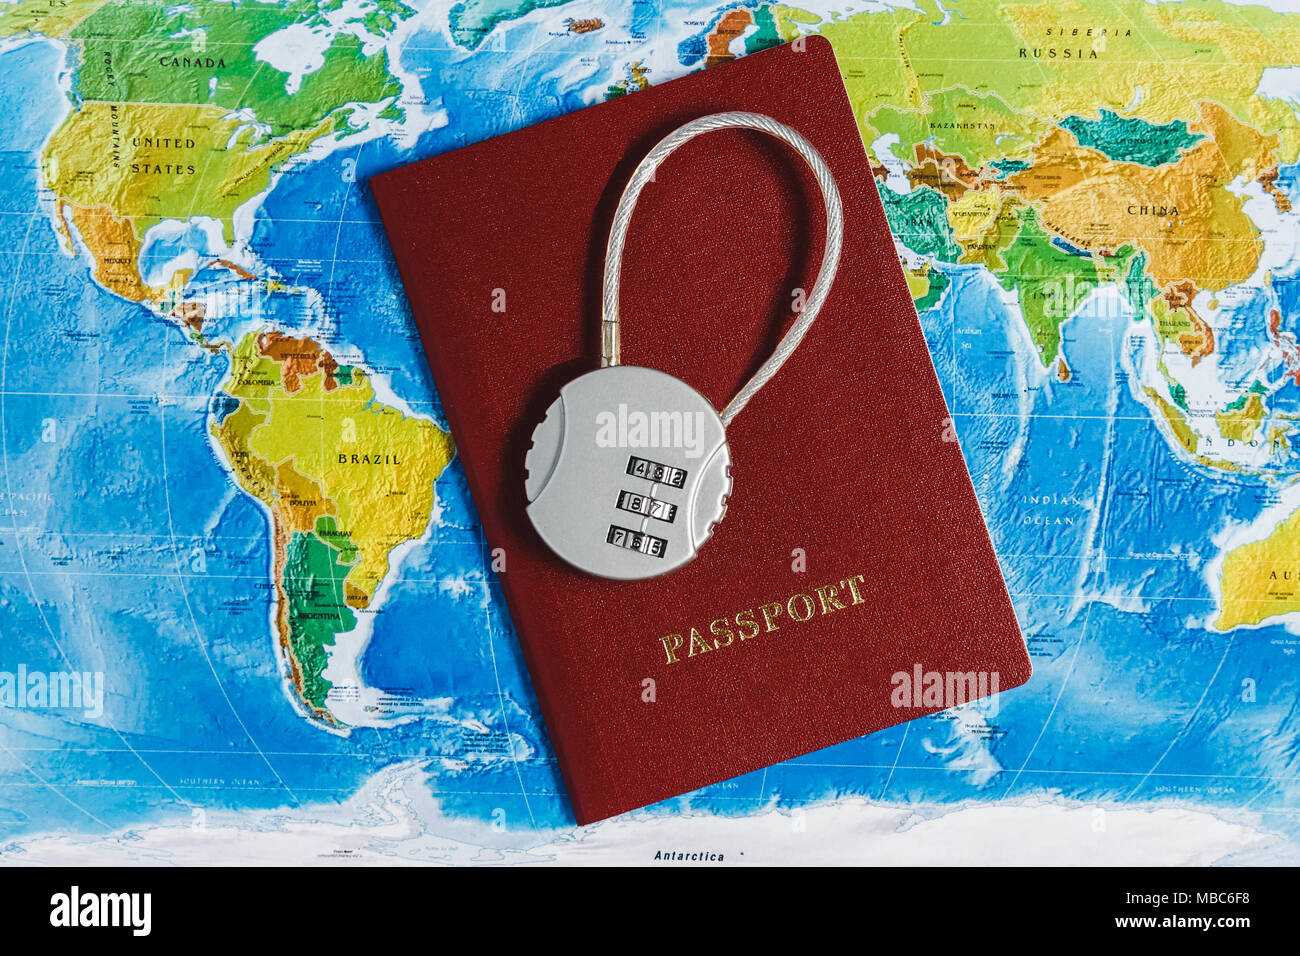 Code Lock on Red Passport on World Map Background. Concept-Ban on Travel, Lack of Visa. - Stock Image